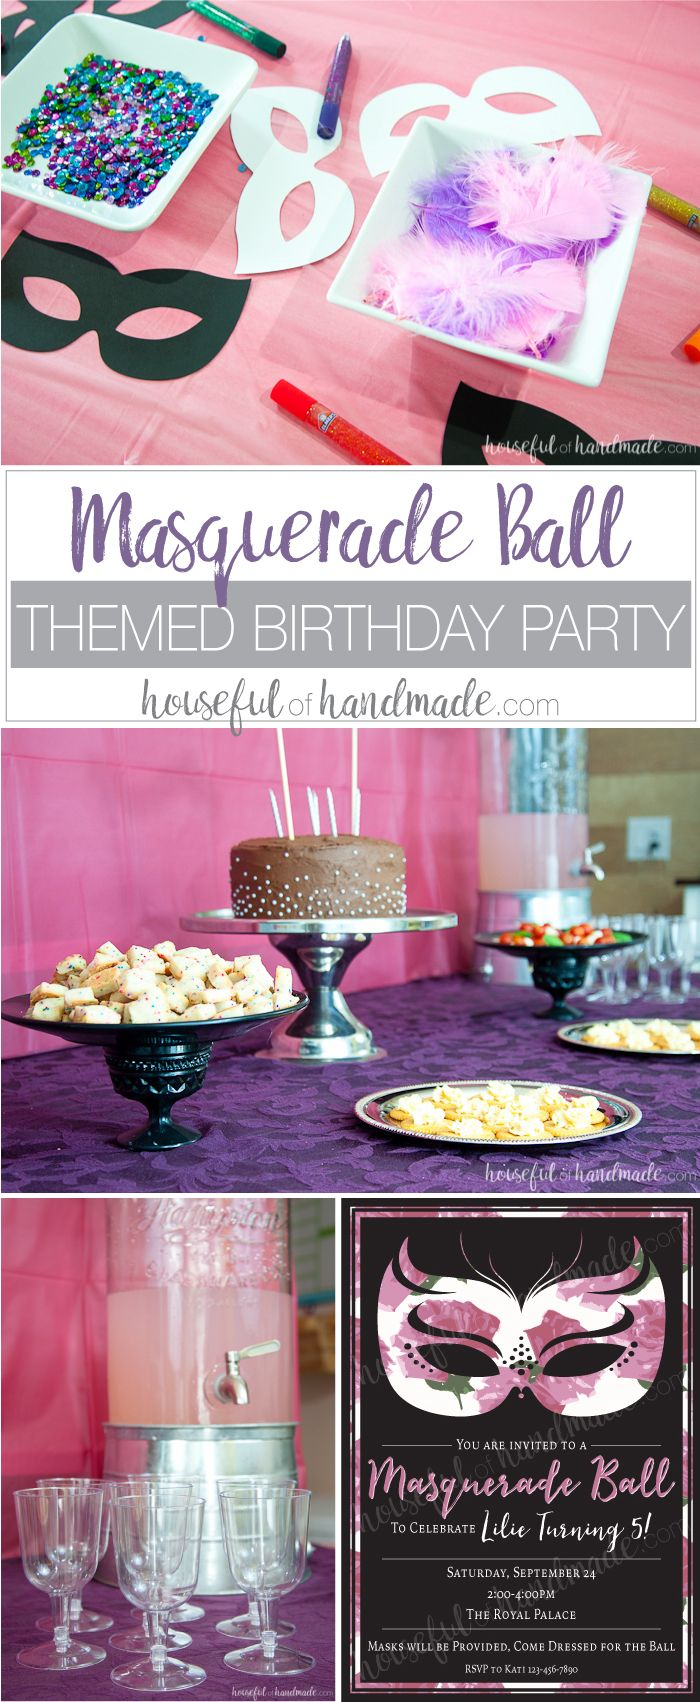 Best 25 Ball theme birthday ideas on Pinterest Ball theme party